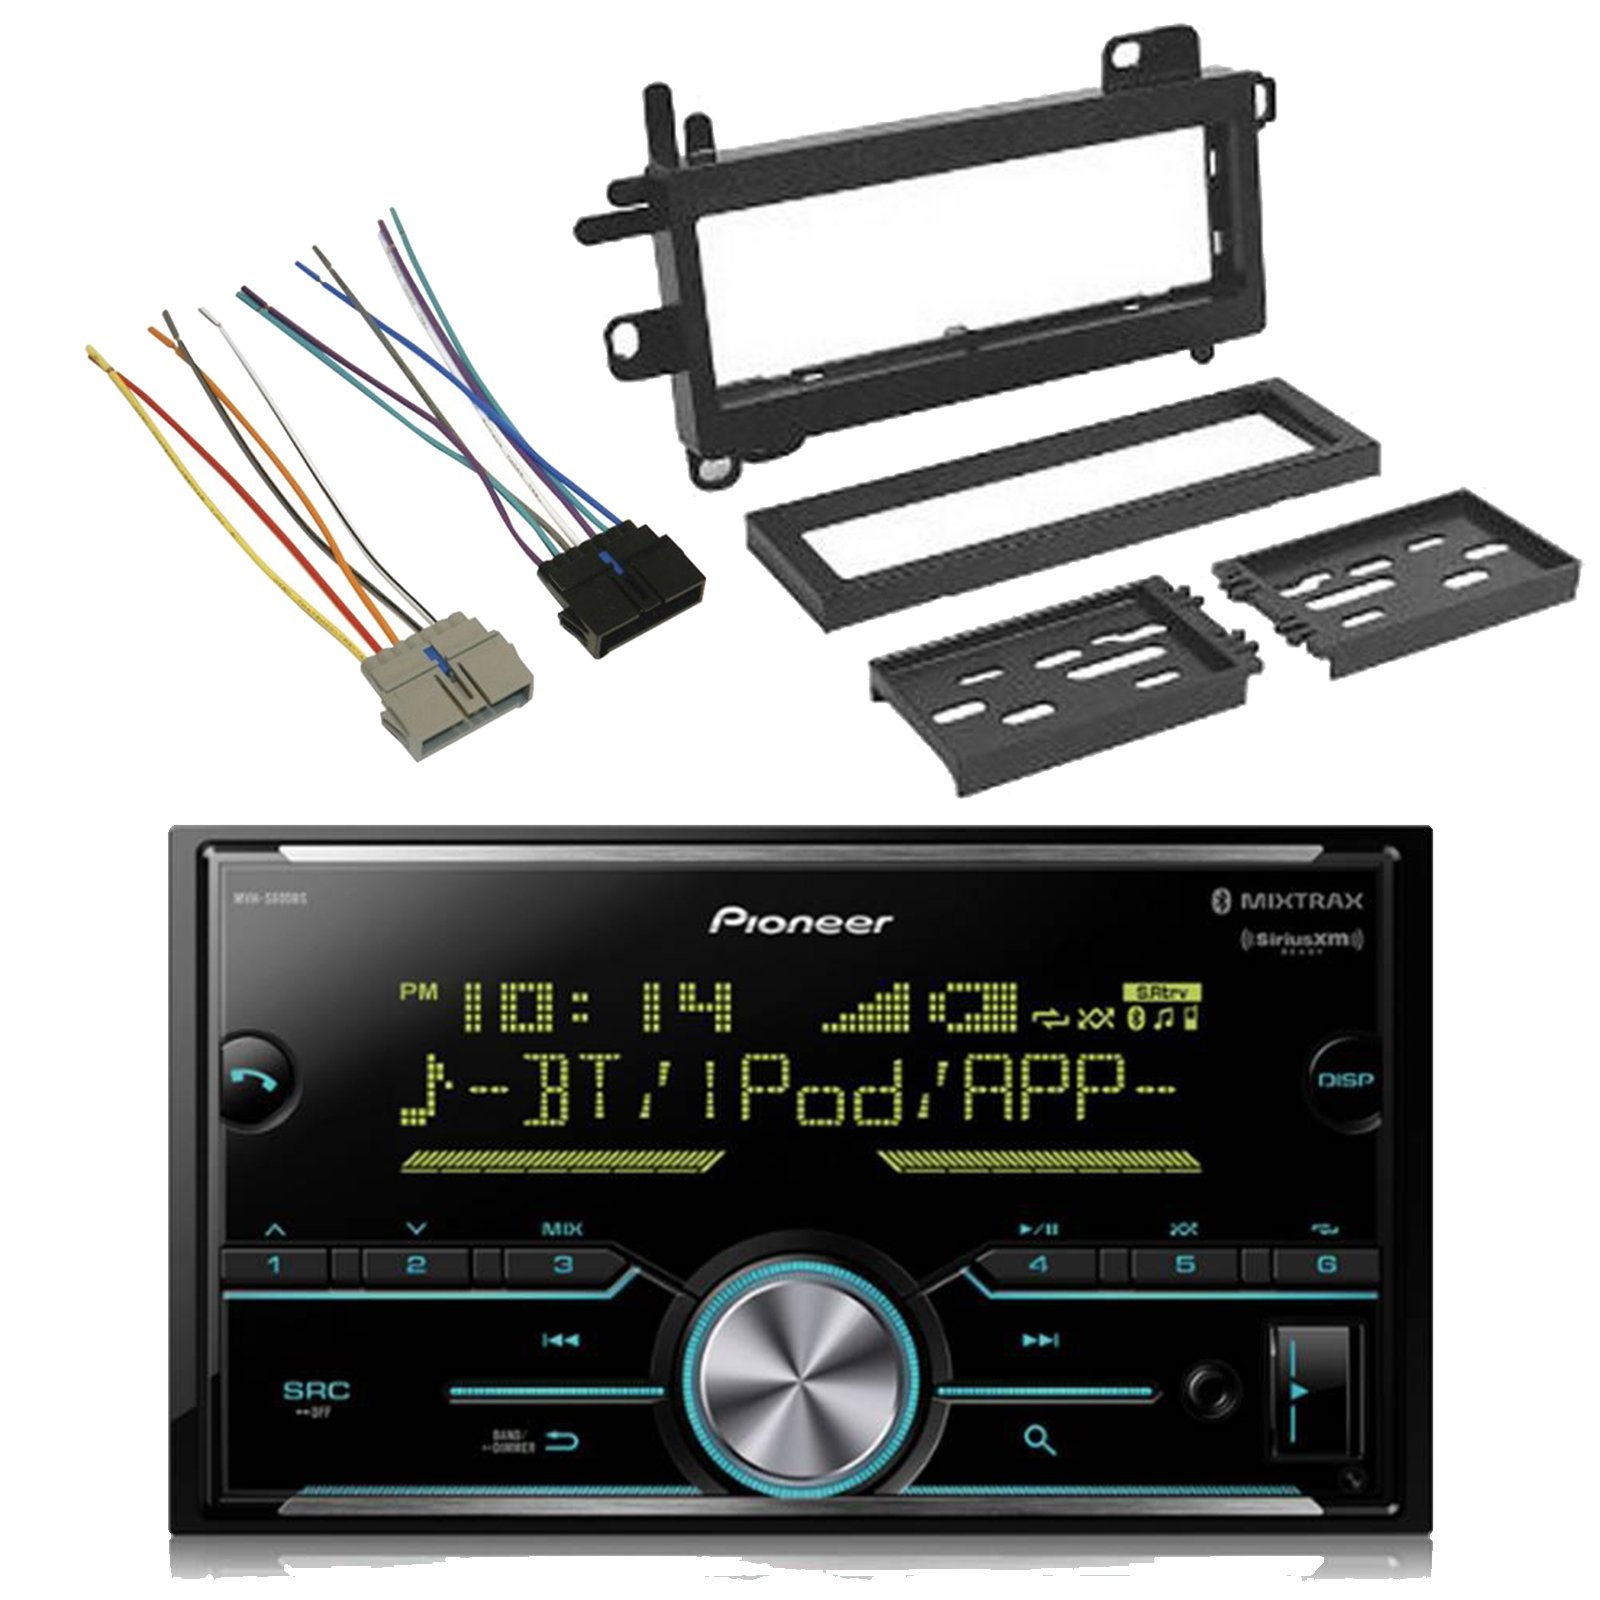 Pioneer MVH-S600BS 2-DIN Digital Media Bluetooth SiriusXM-Ready MIXTRAX Car Audio Receiver, Scosche CR01B Power Connector Wire Harness, w/CJ1279B Dash Kit (Fits 1984-Up Chrysler)